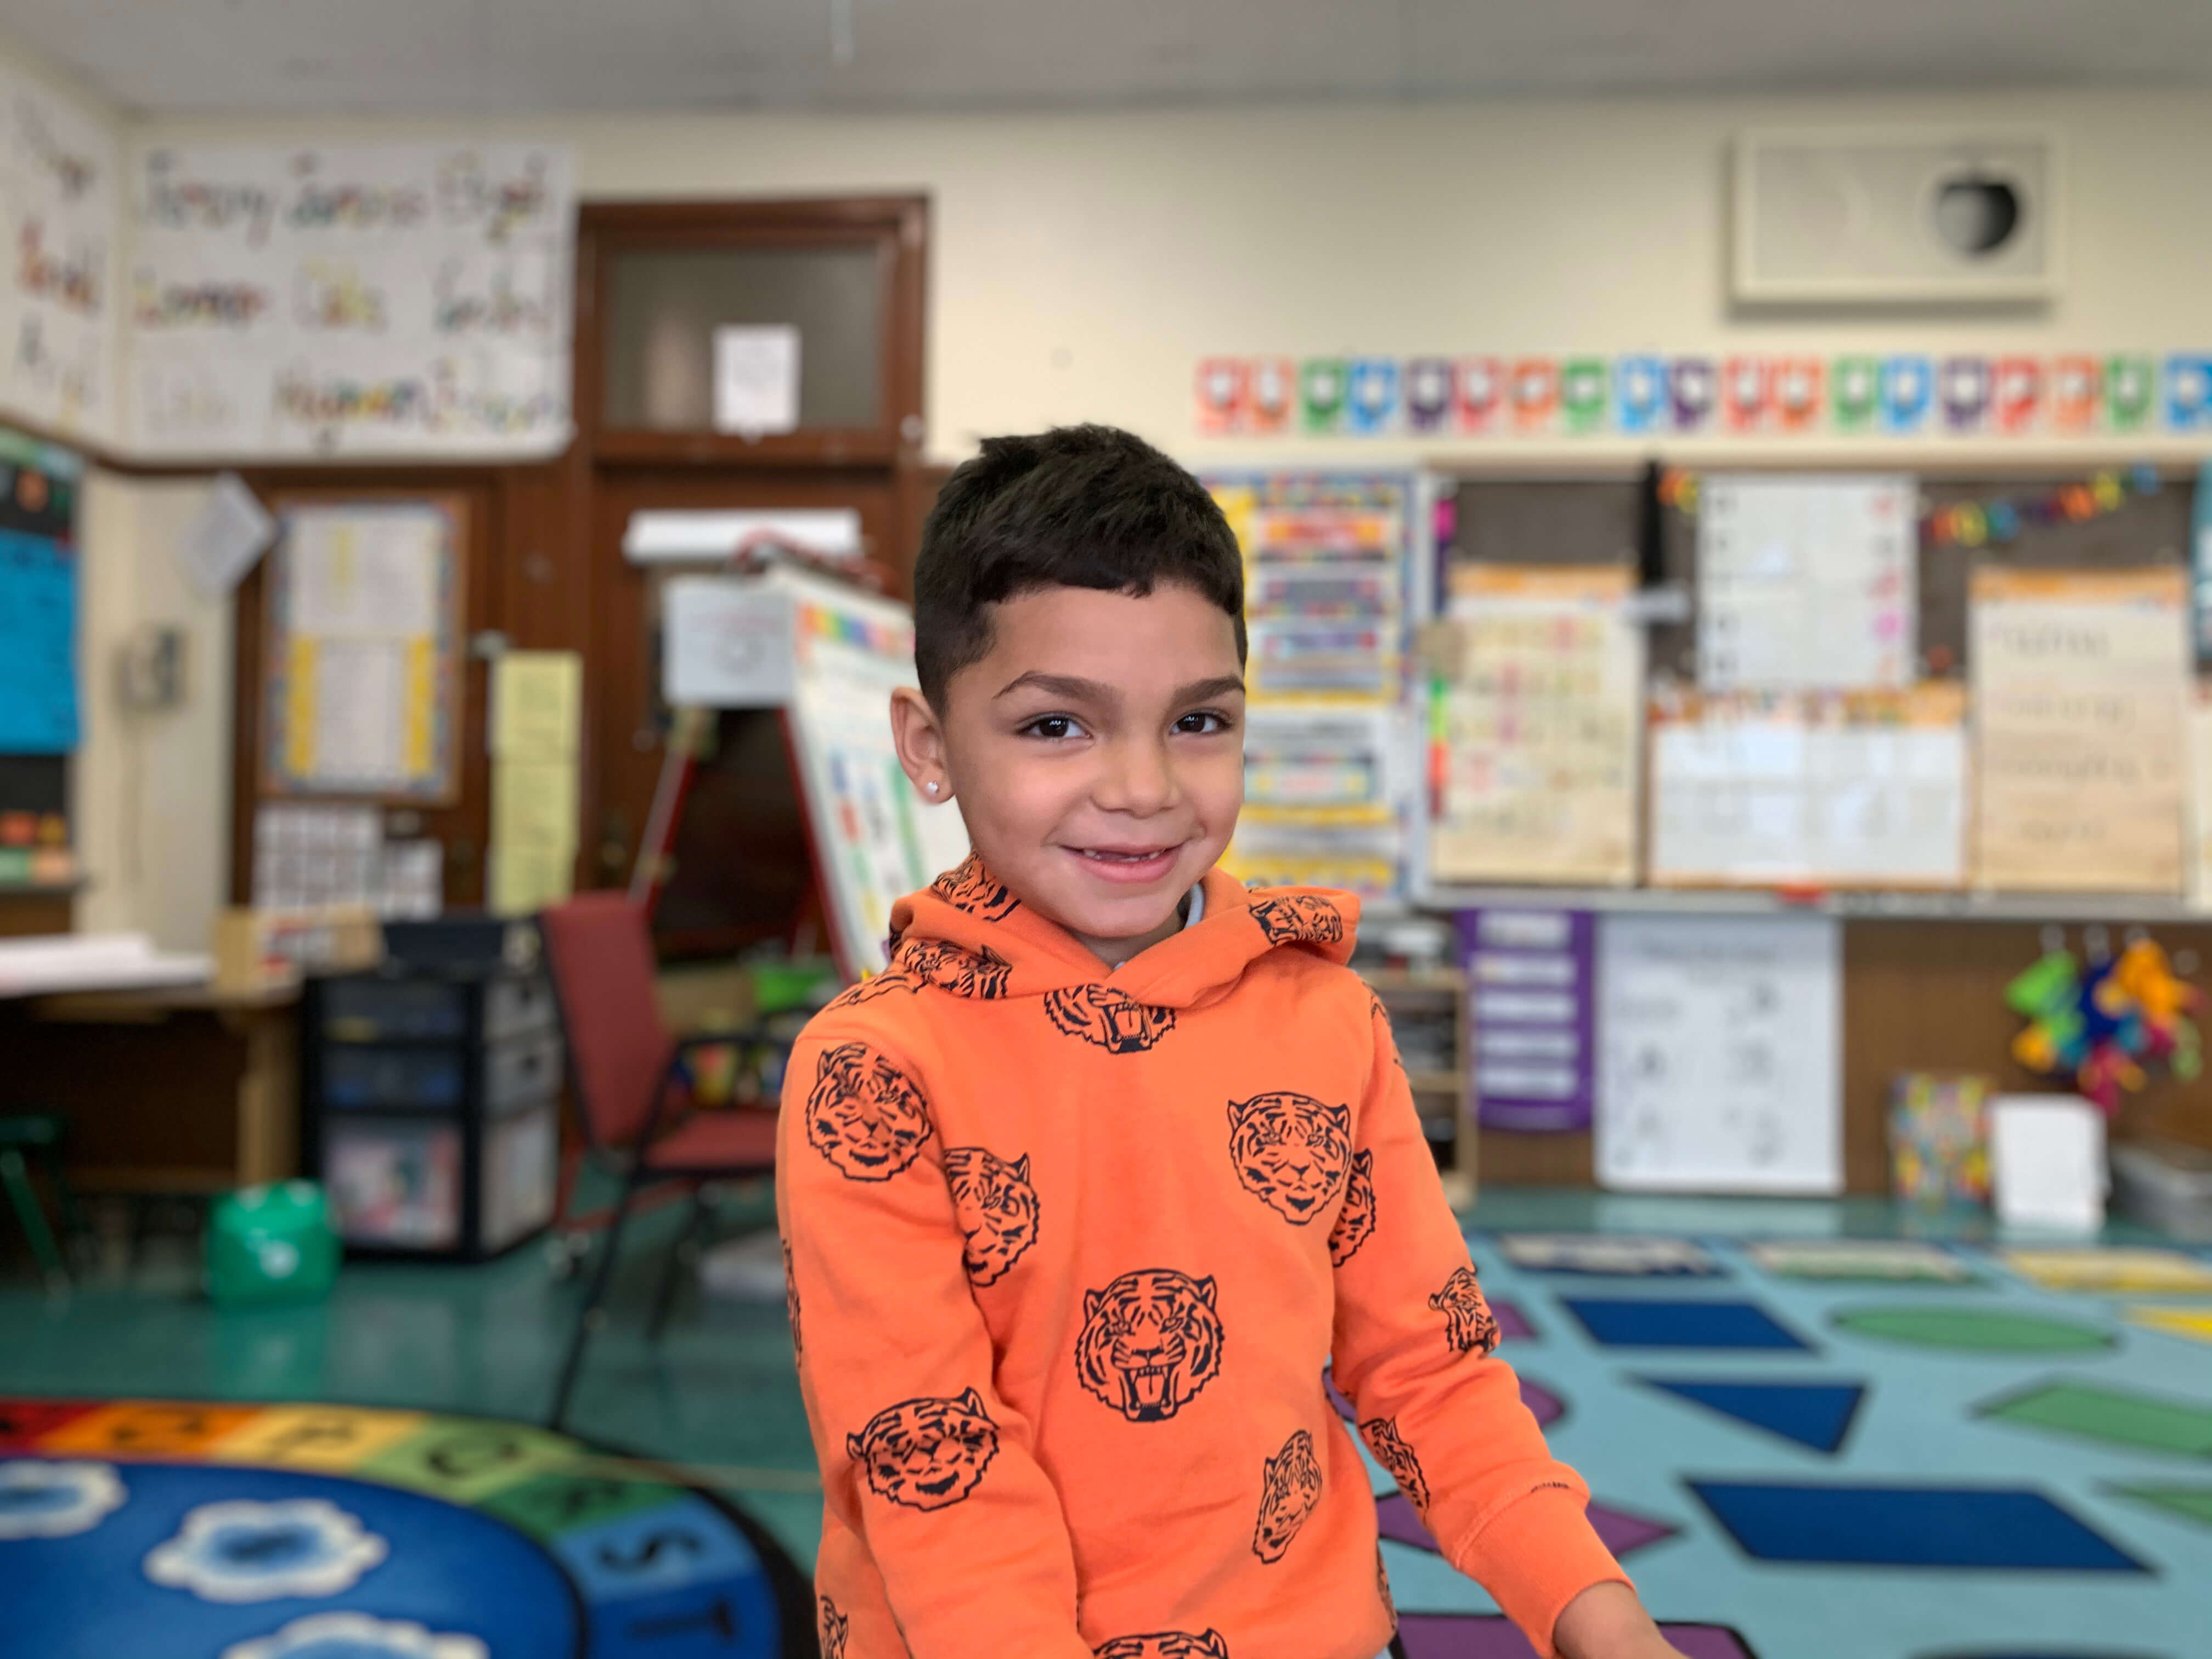 Young elementary student smiling for the camera